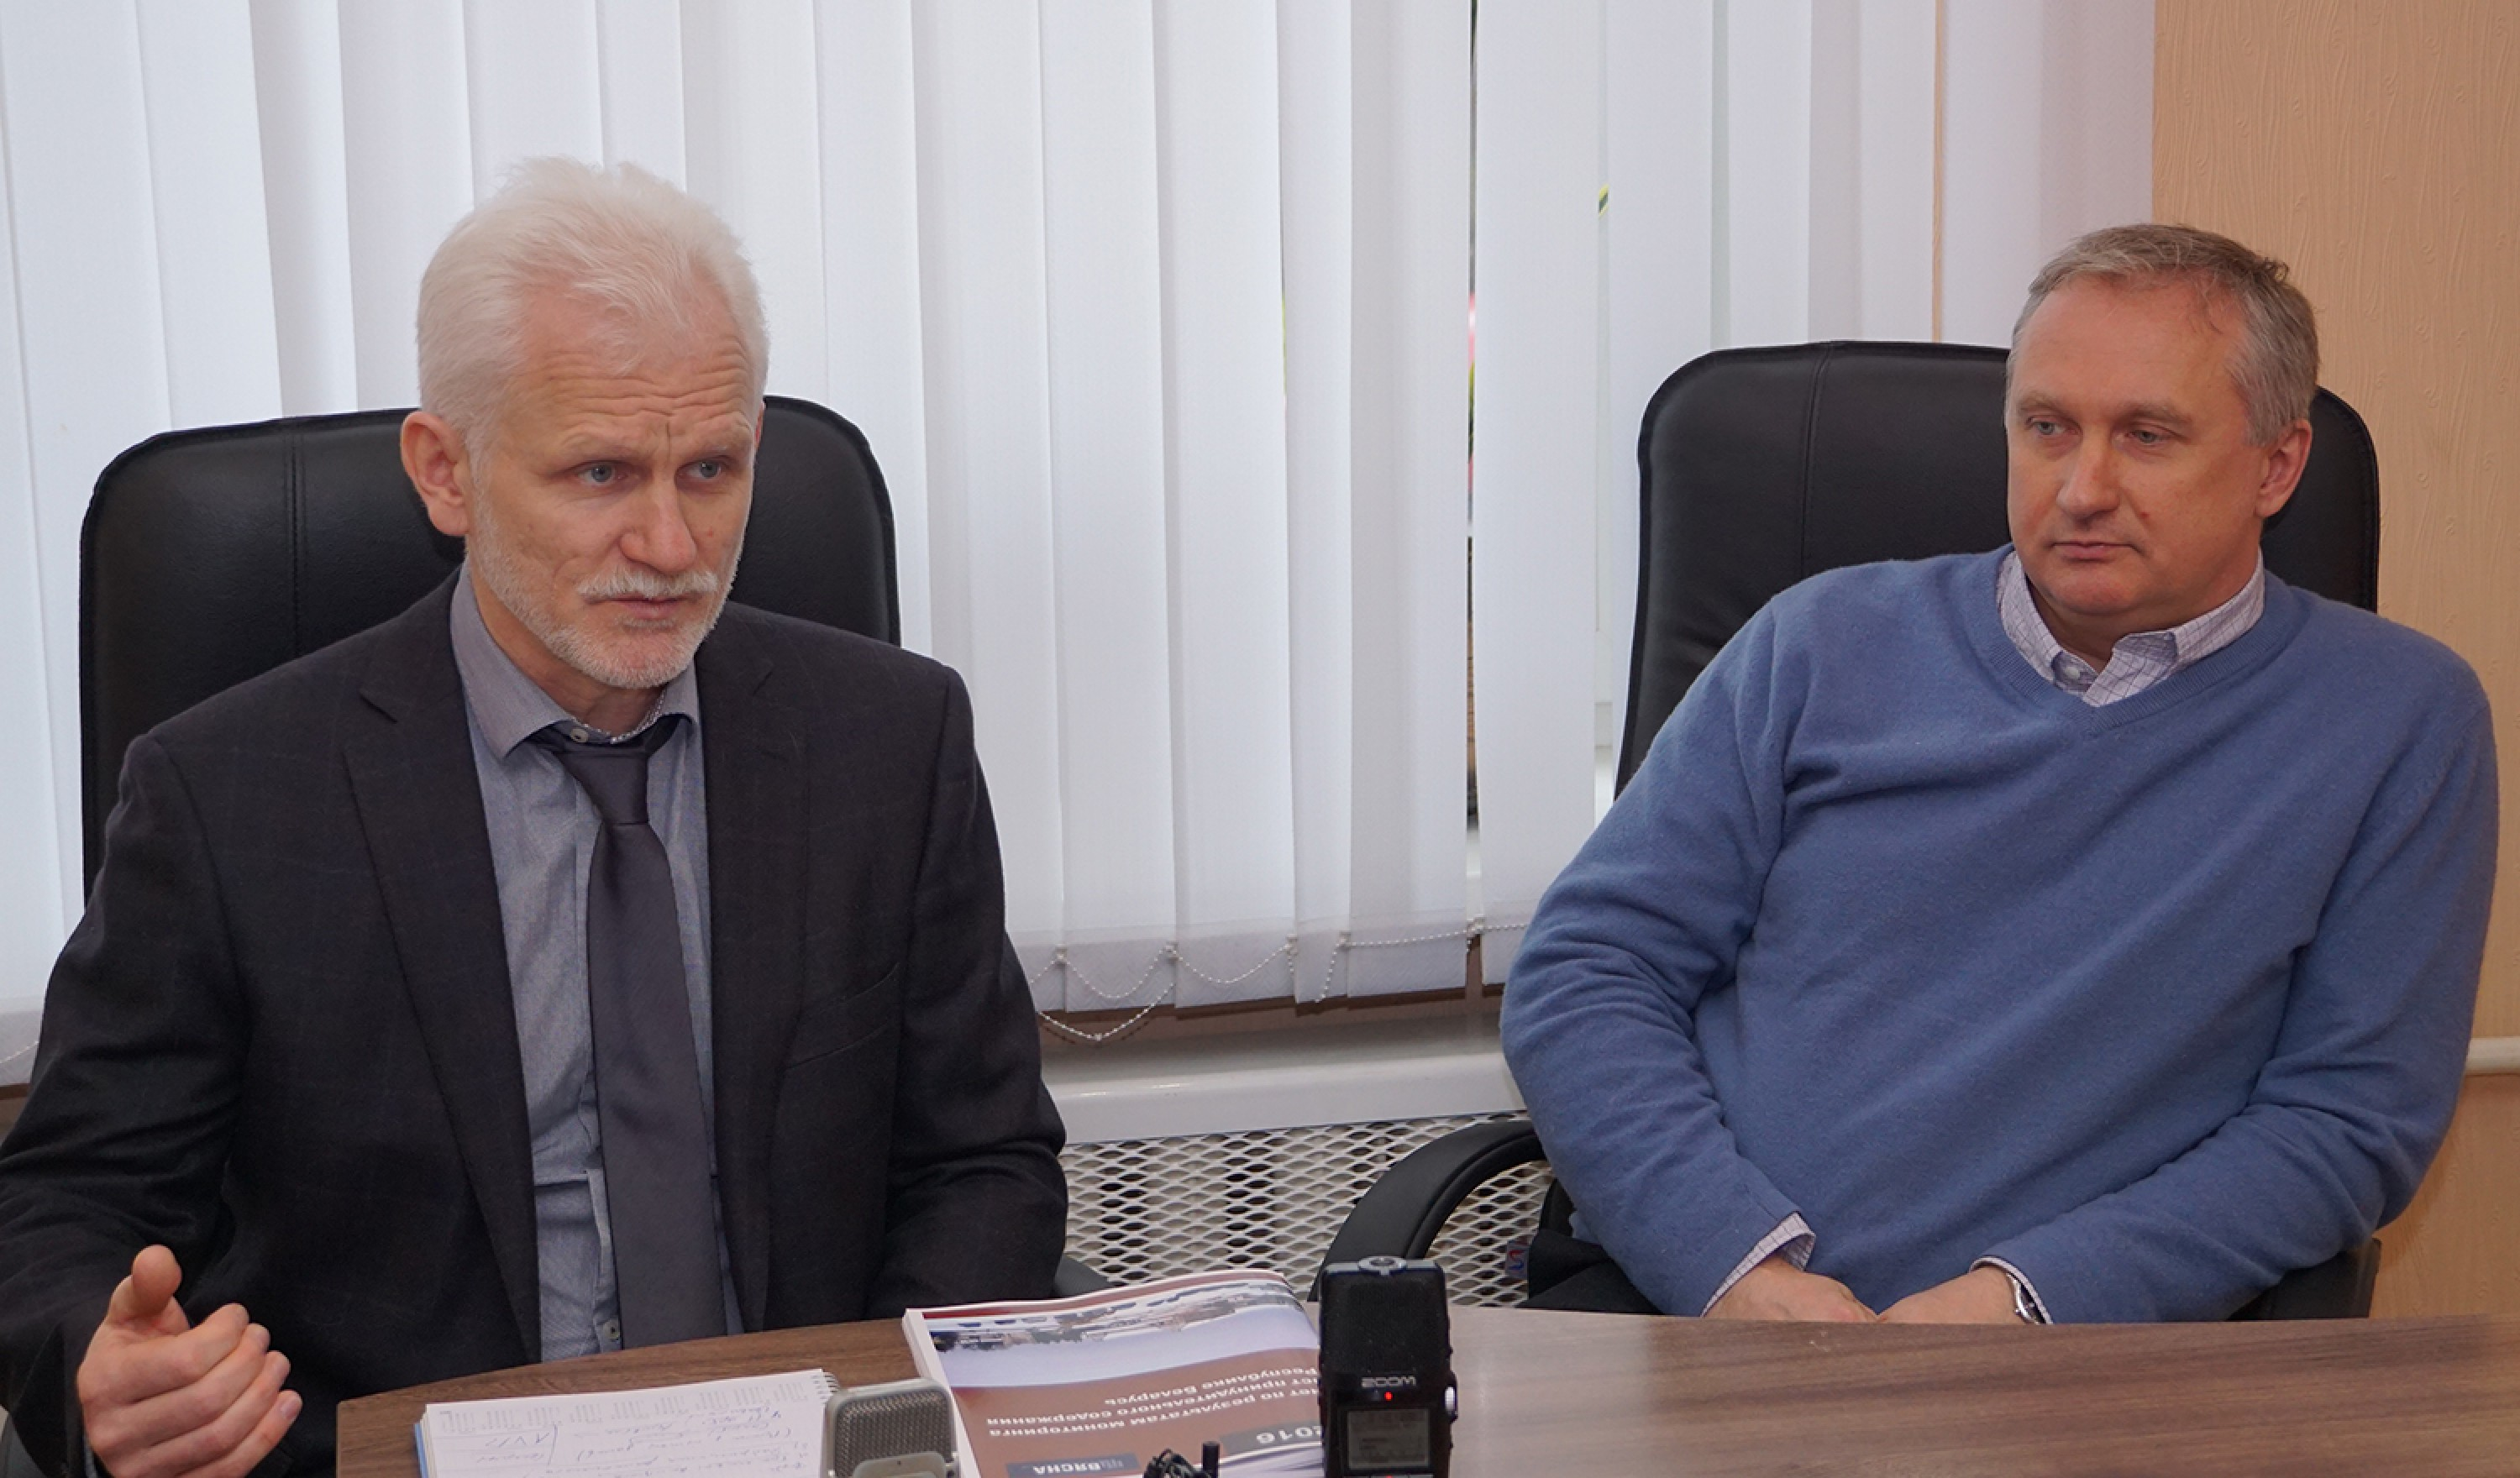 Ales Bialiatski and Pavel Sapelka during the presentation of Viasna's report on monitoring places of unfreedom. Minsk, 21 March 2017